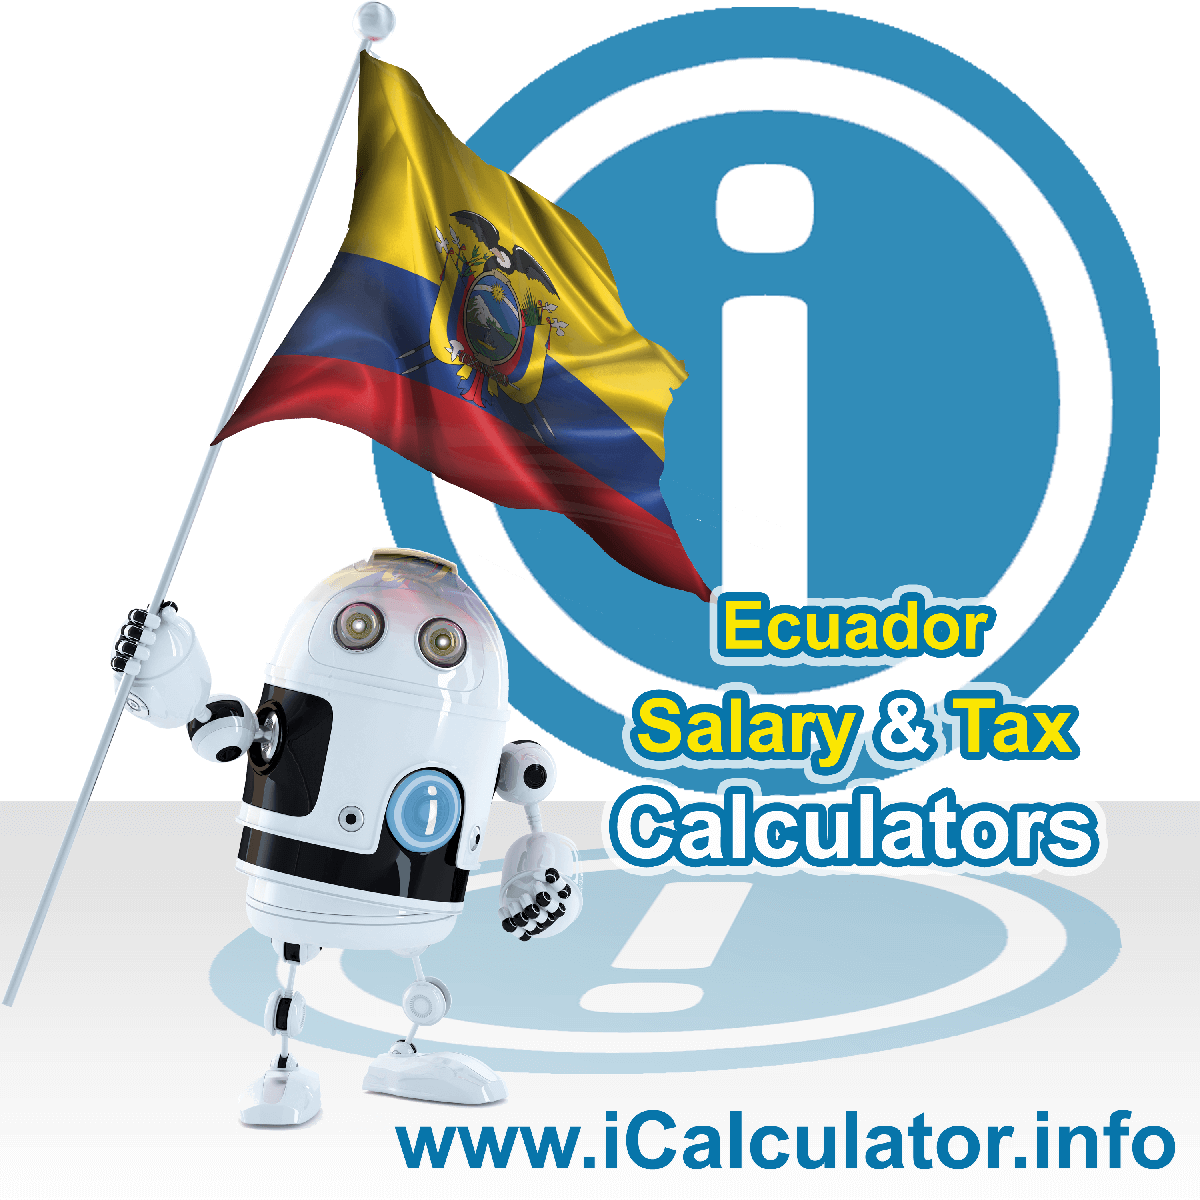 Ecuador Wage Calculator. This image shows the Ecuador flag and information relating to the tax formula for the Ecuador Tax Calculator